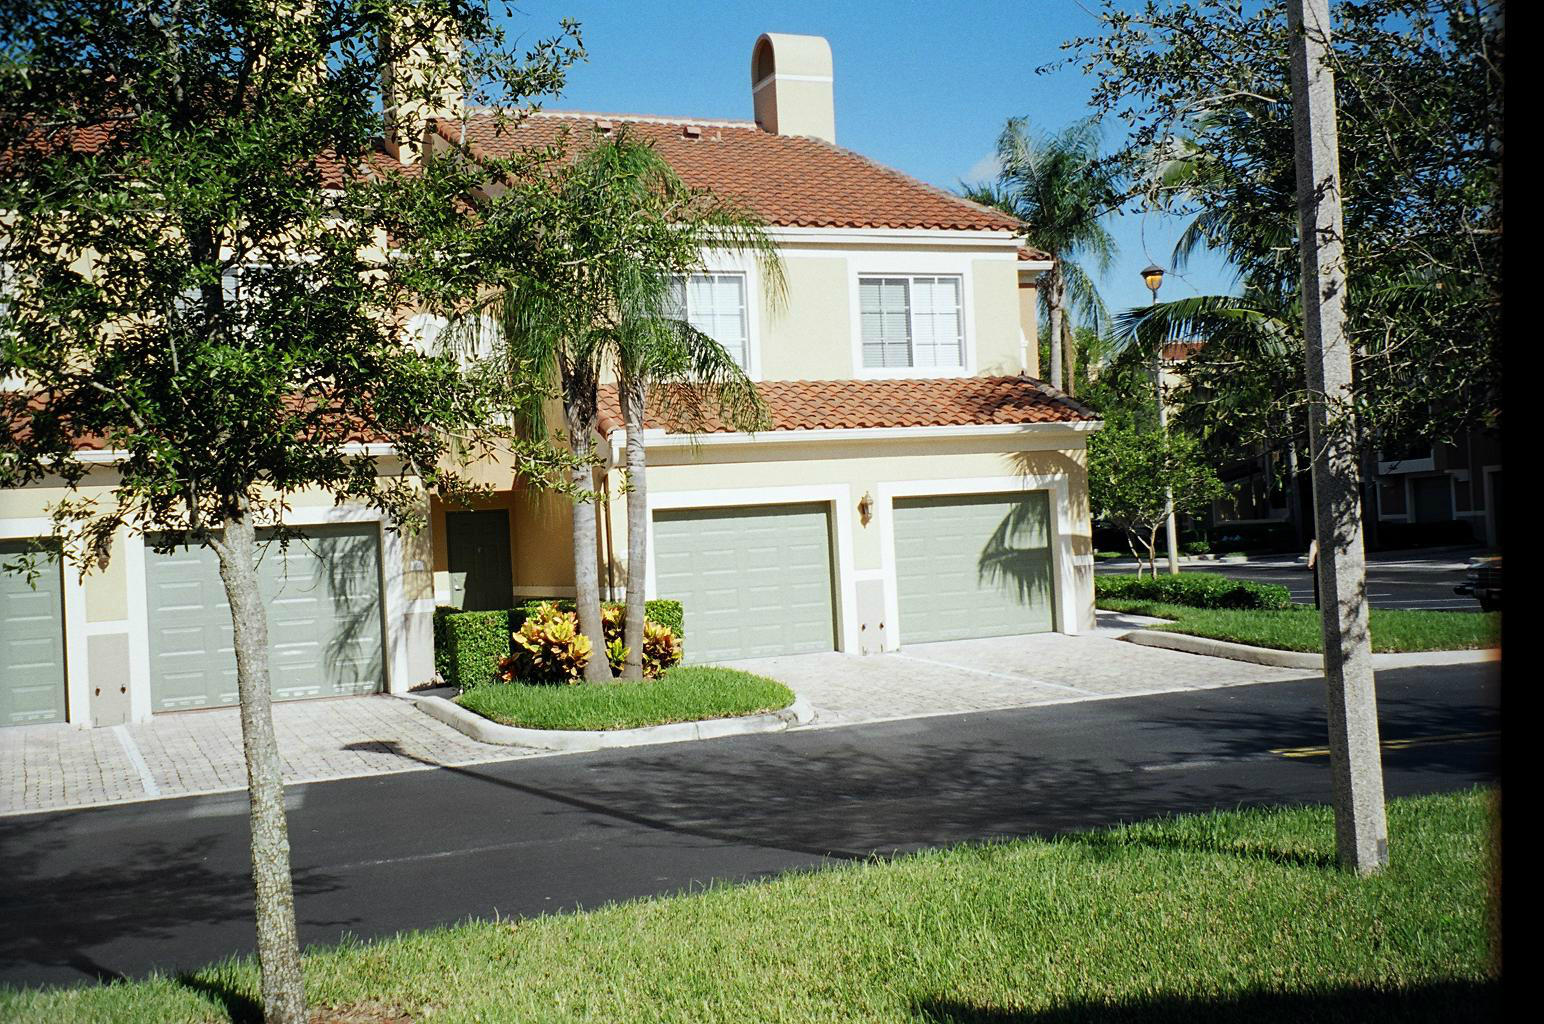 11789 St Andrews Place, Wellington, Florida 33414, 2 Bedrooms Bedrooms, ,2.1 BathroomsBathrooms,Townhouse,For Rent,Palm Beach Polo,St Andrews,1,RX-10620484